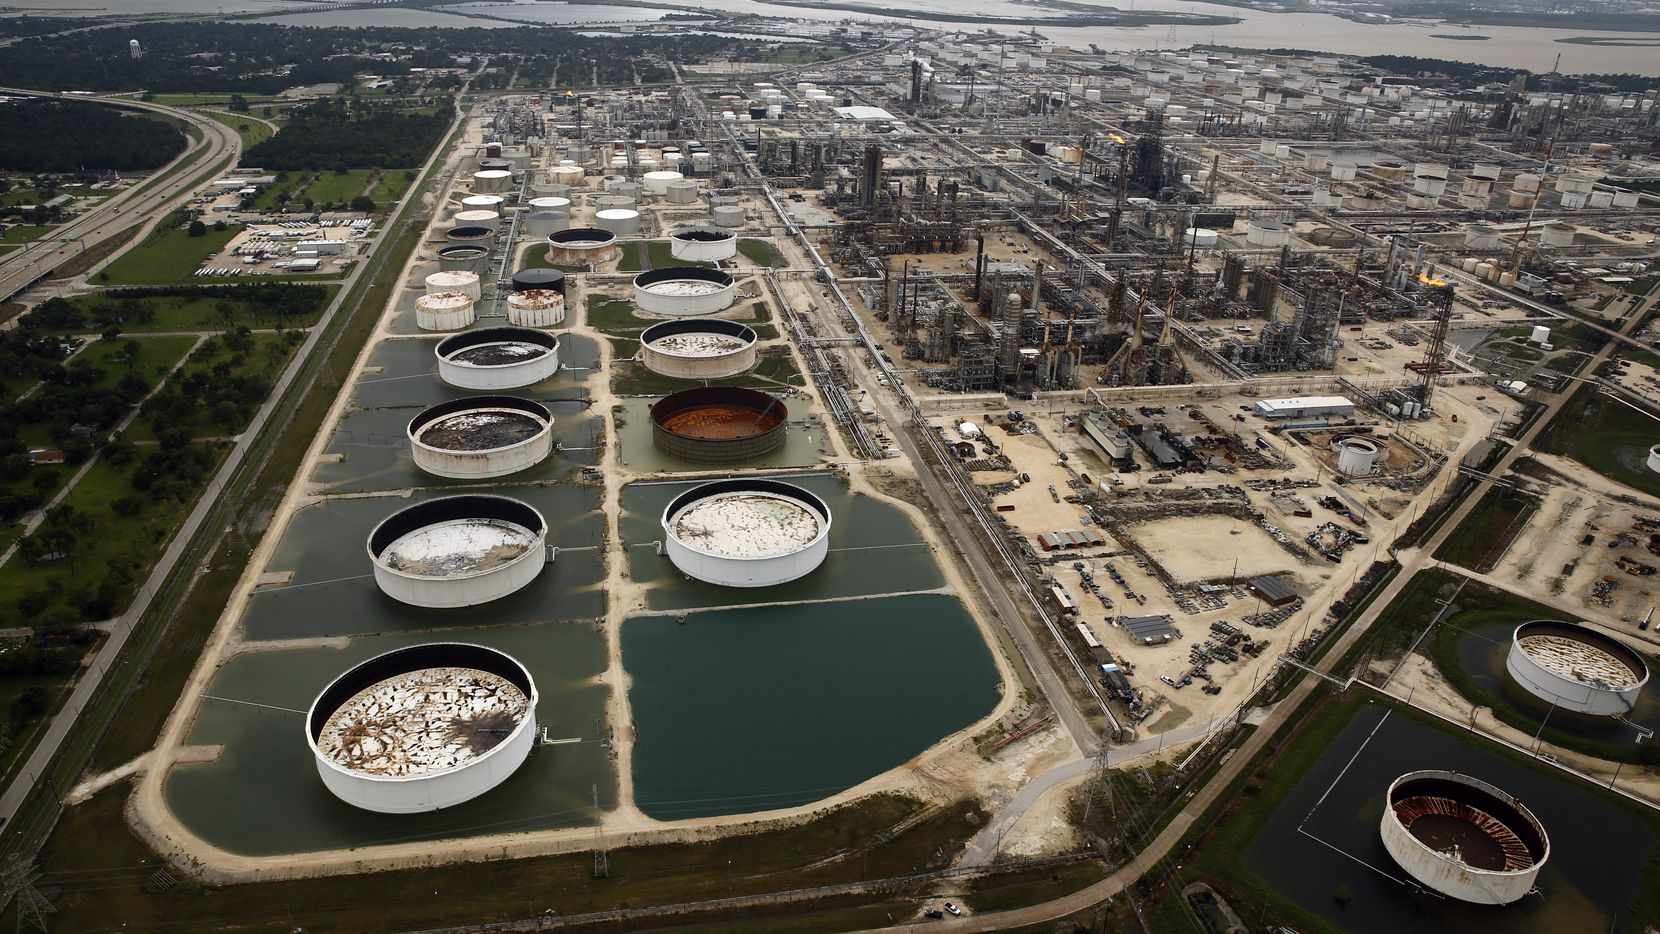 Large storage tanks situated in retention ponds were surrounded by rainwater left behind by Hurricane Harvey at ExxonMobil's refinery in Baytown, Texas, in 2017.